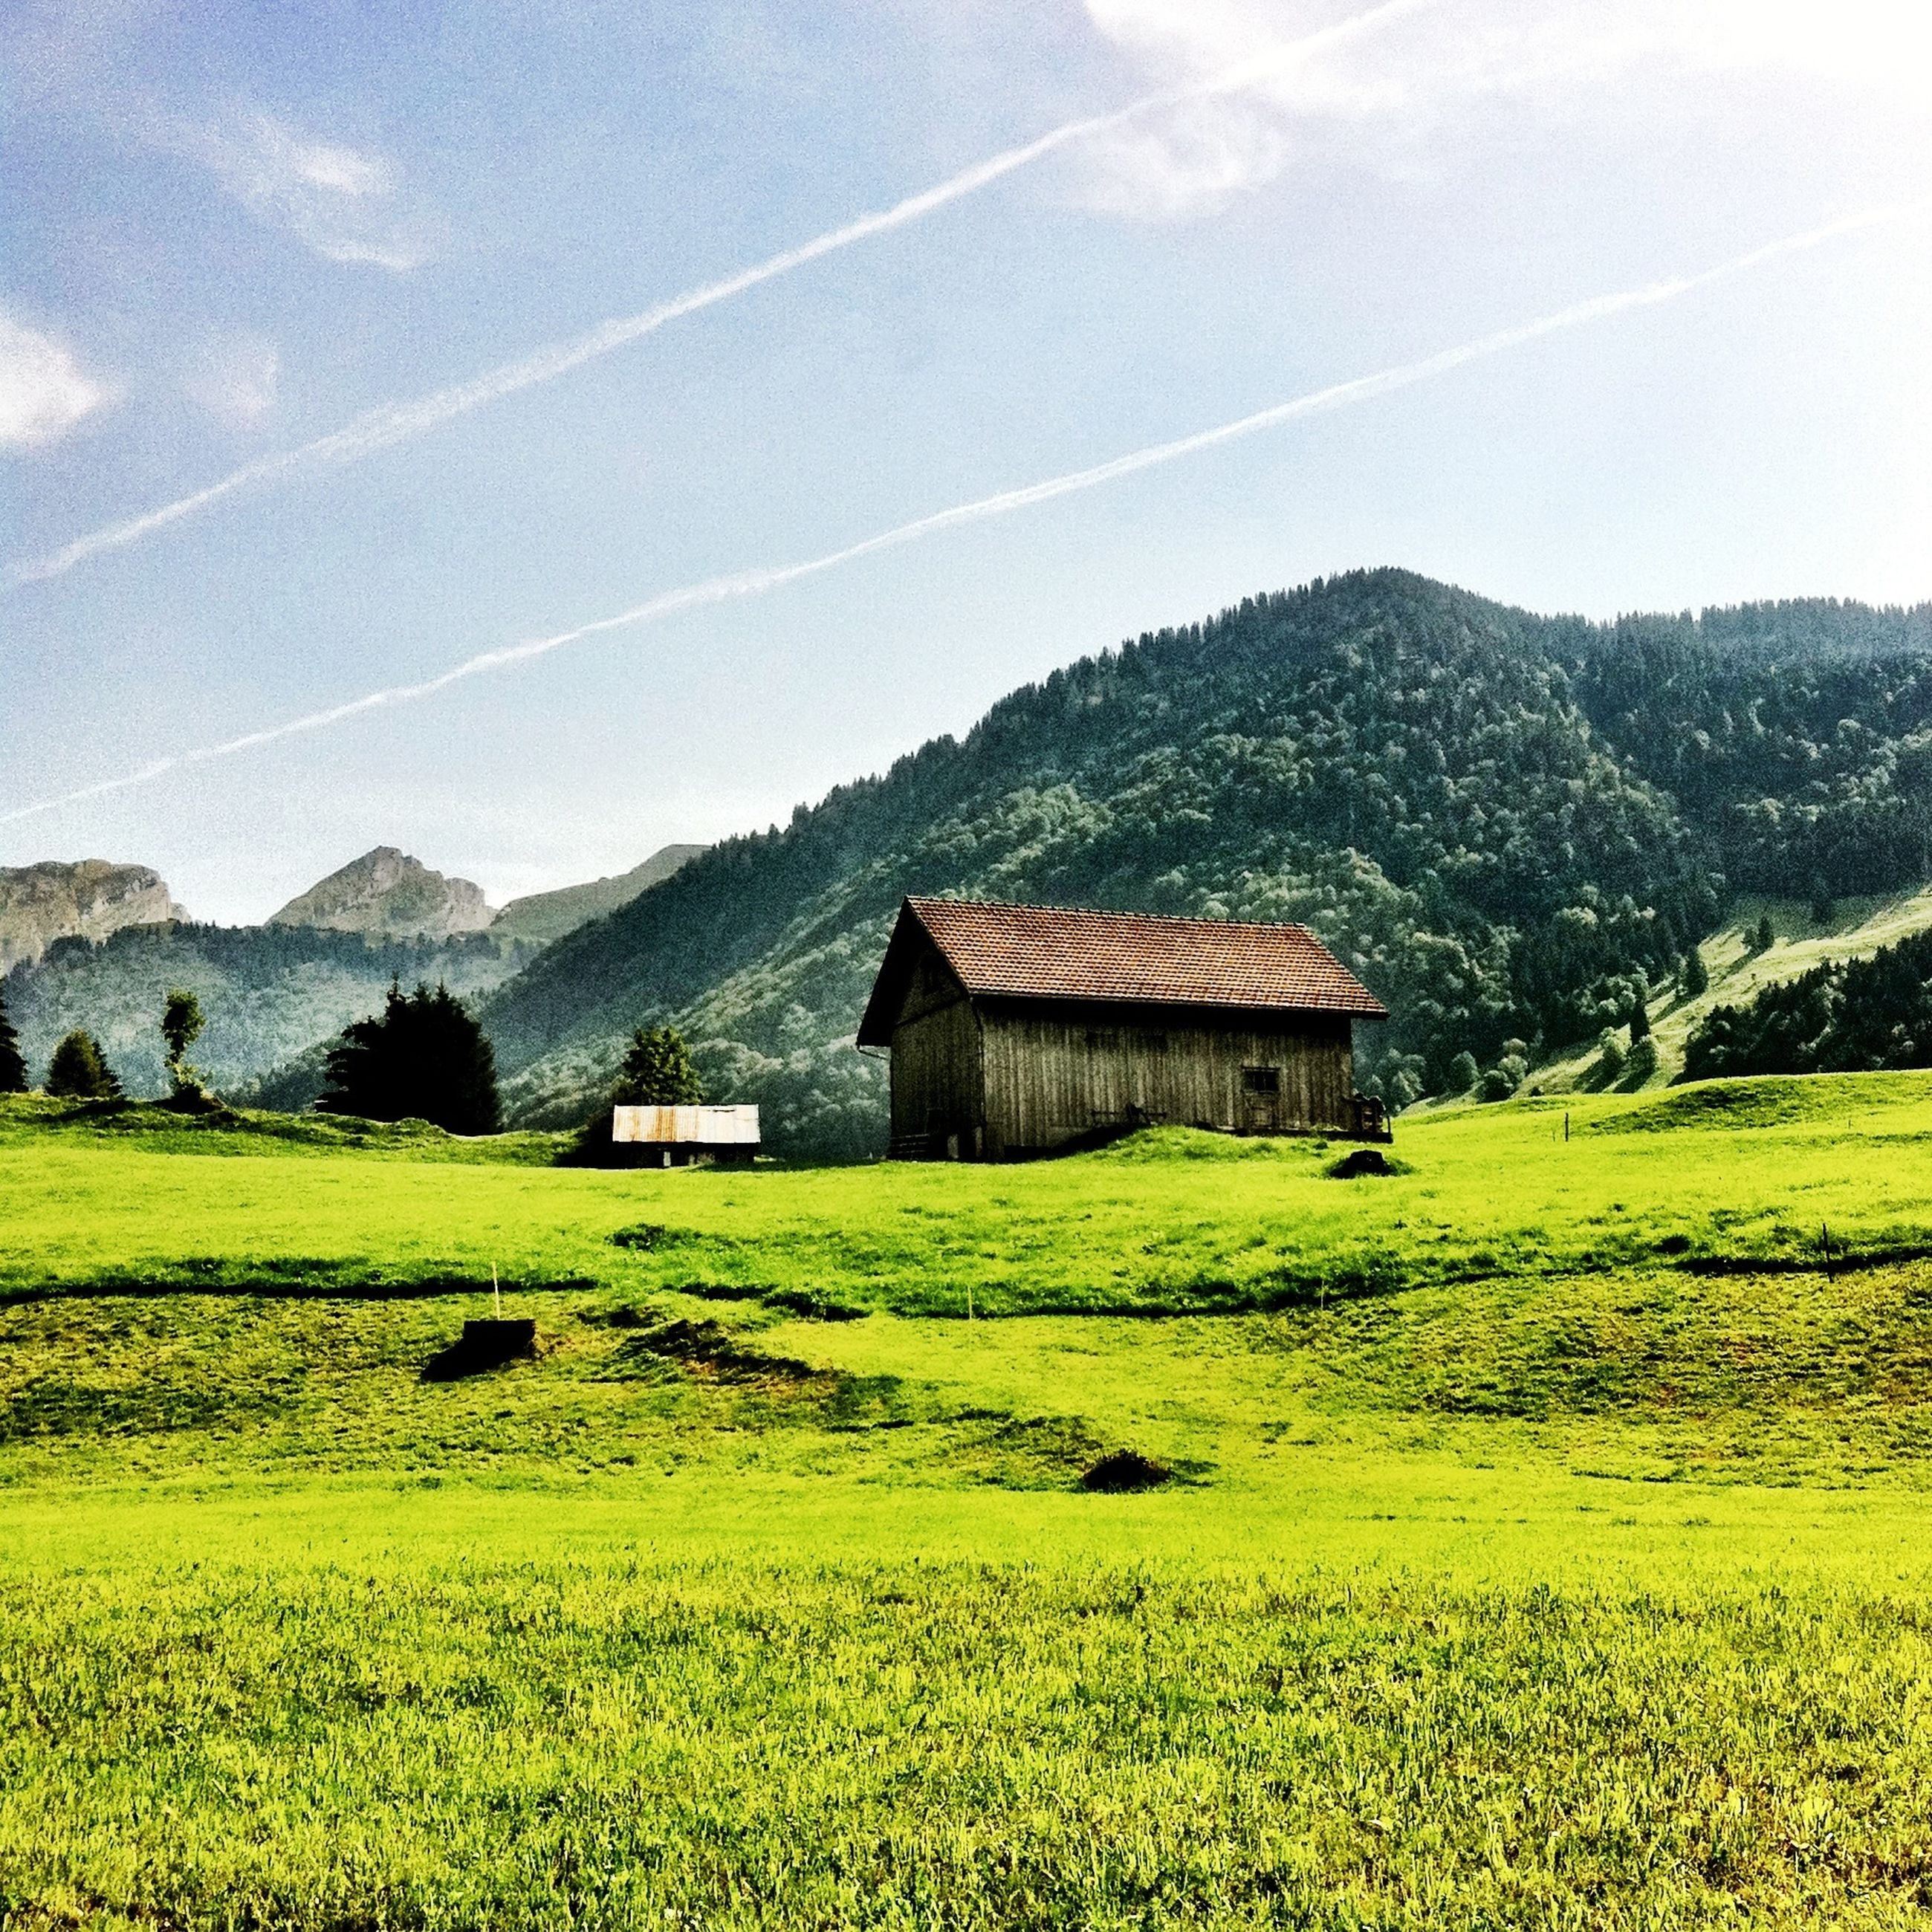 mountain, landscape, grass, field, house, rural scene, tranquil scene, built structure, building exterior, architecture, sky, tranquility, green color, scenics, beauty in nature, mountain range, nature, grassy, agriculture, farm